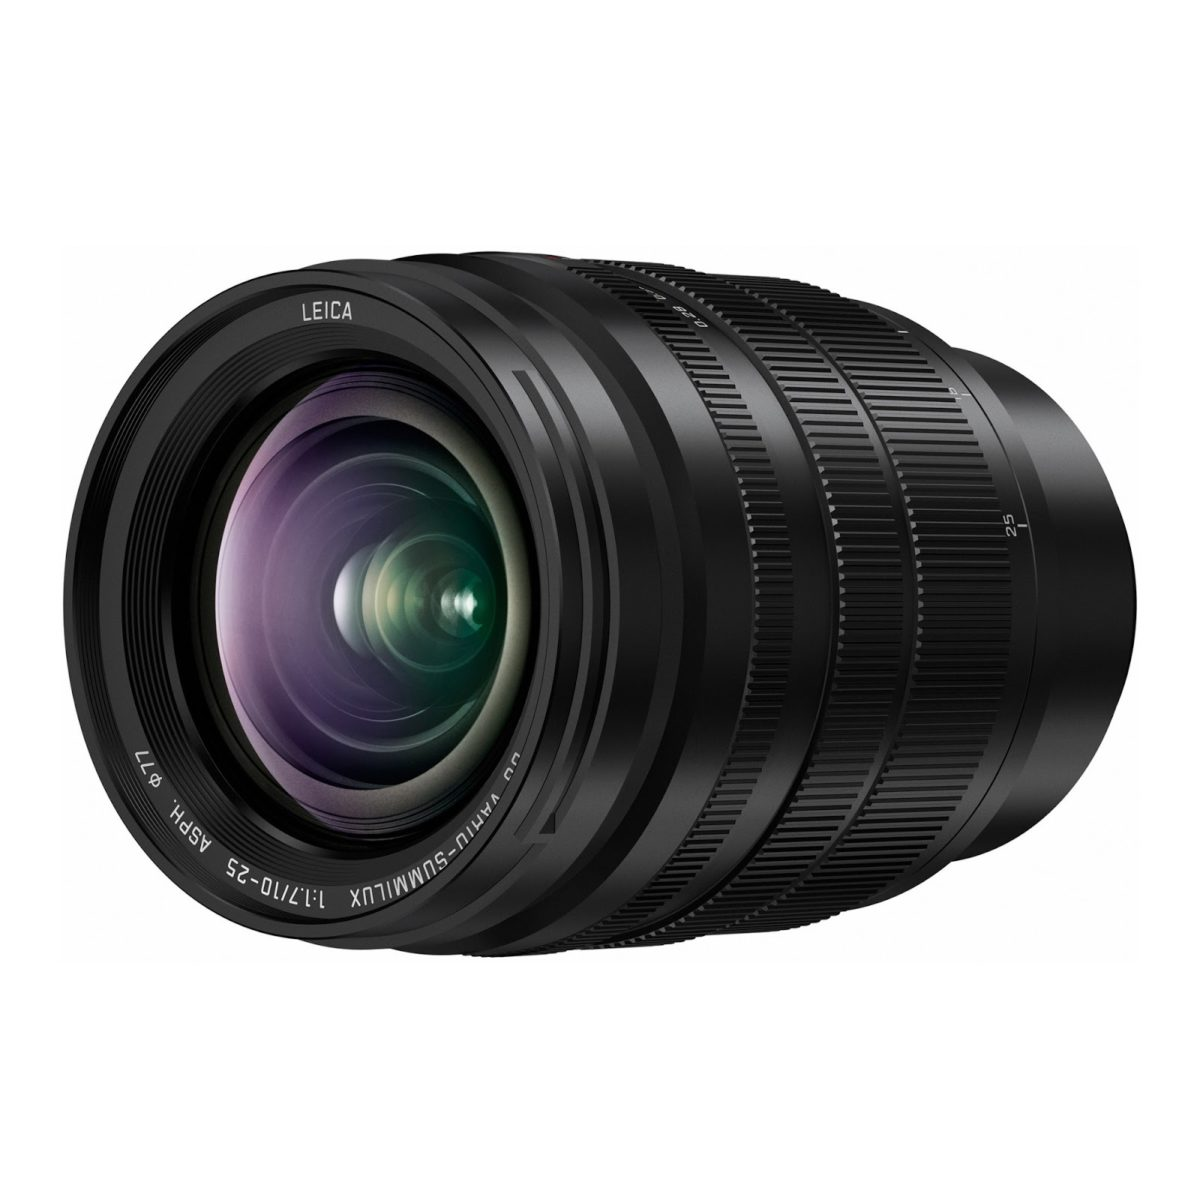 Images of Panasonic Leica DG Vario-Summilux 10-25mm f/1.7 ASPH MFT lens and Panasonic 1.4x/2.0x teleconverters for L-mount